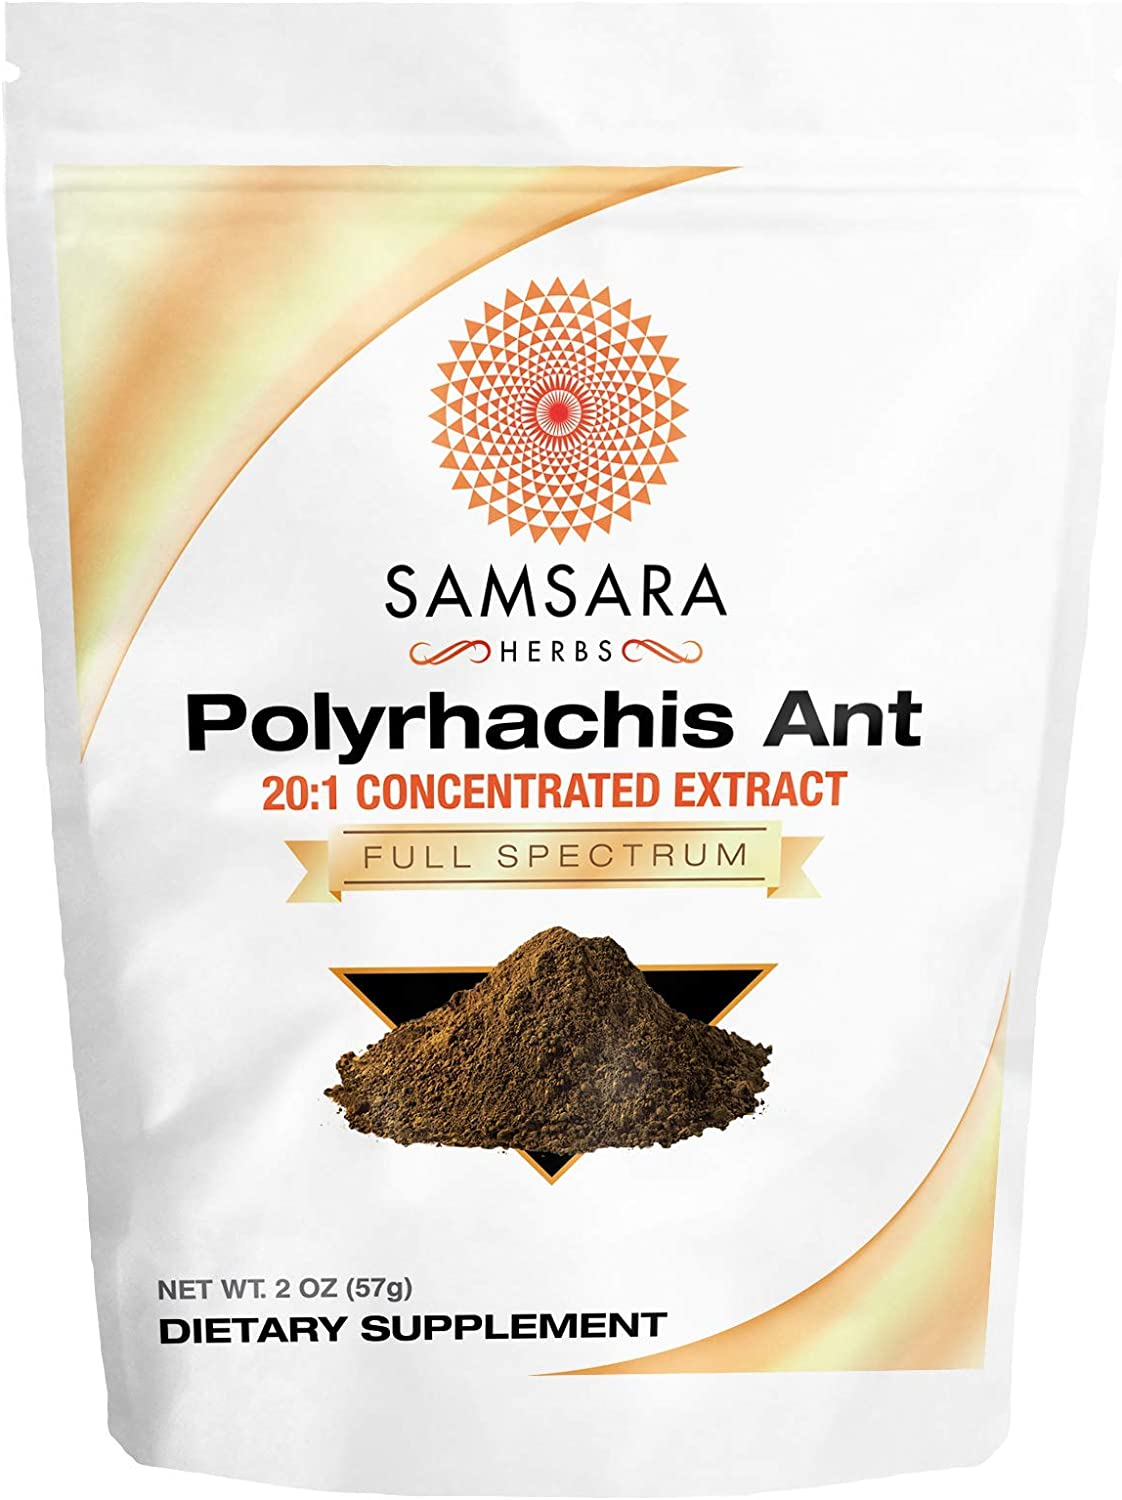 Samsara Herbs Polyrhachis Ant Extract Powder – 20 1 Concentrated Extract 4oz